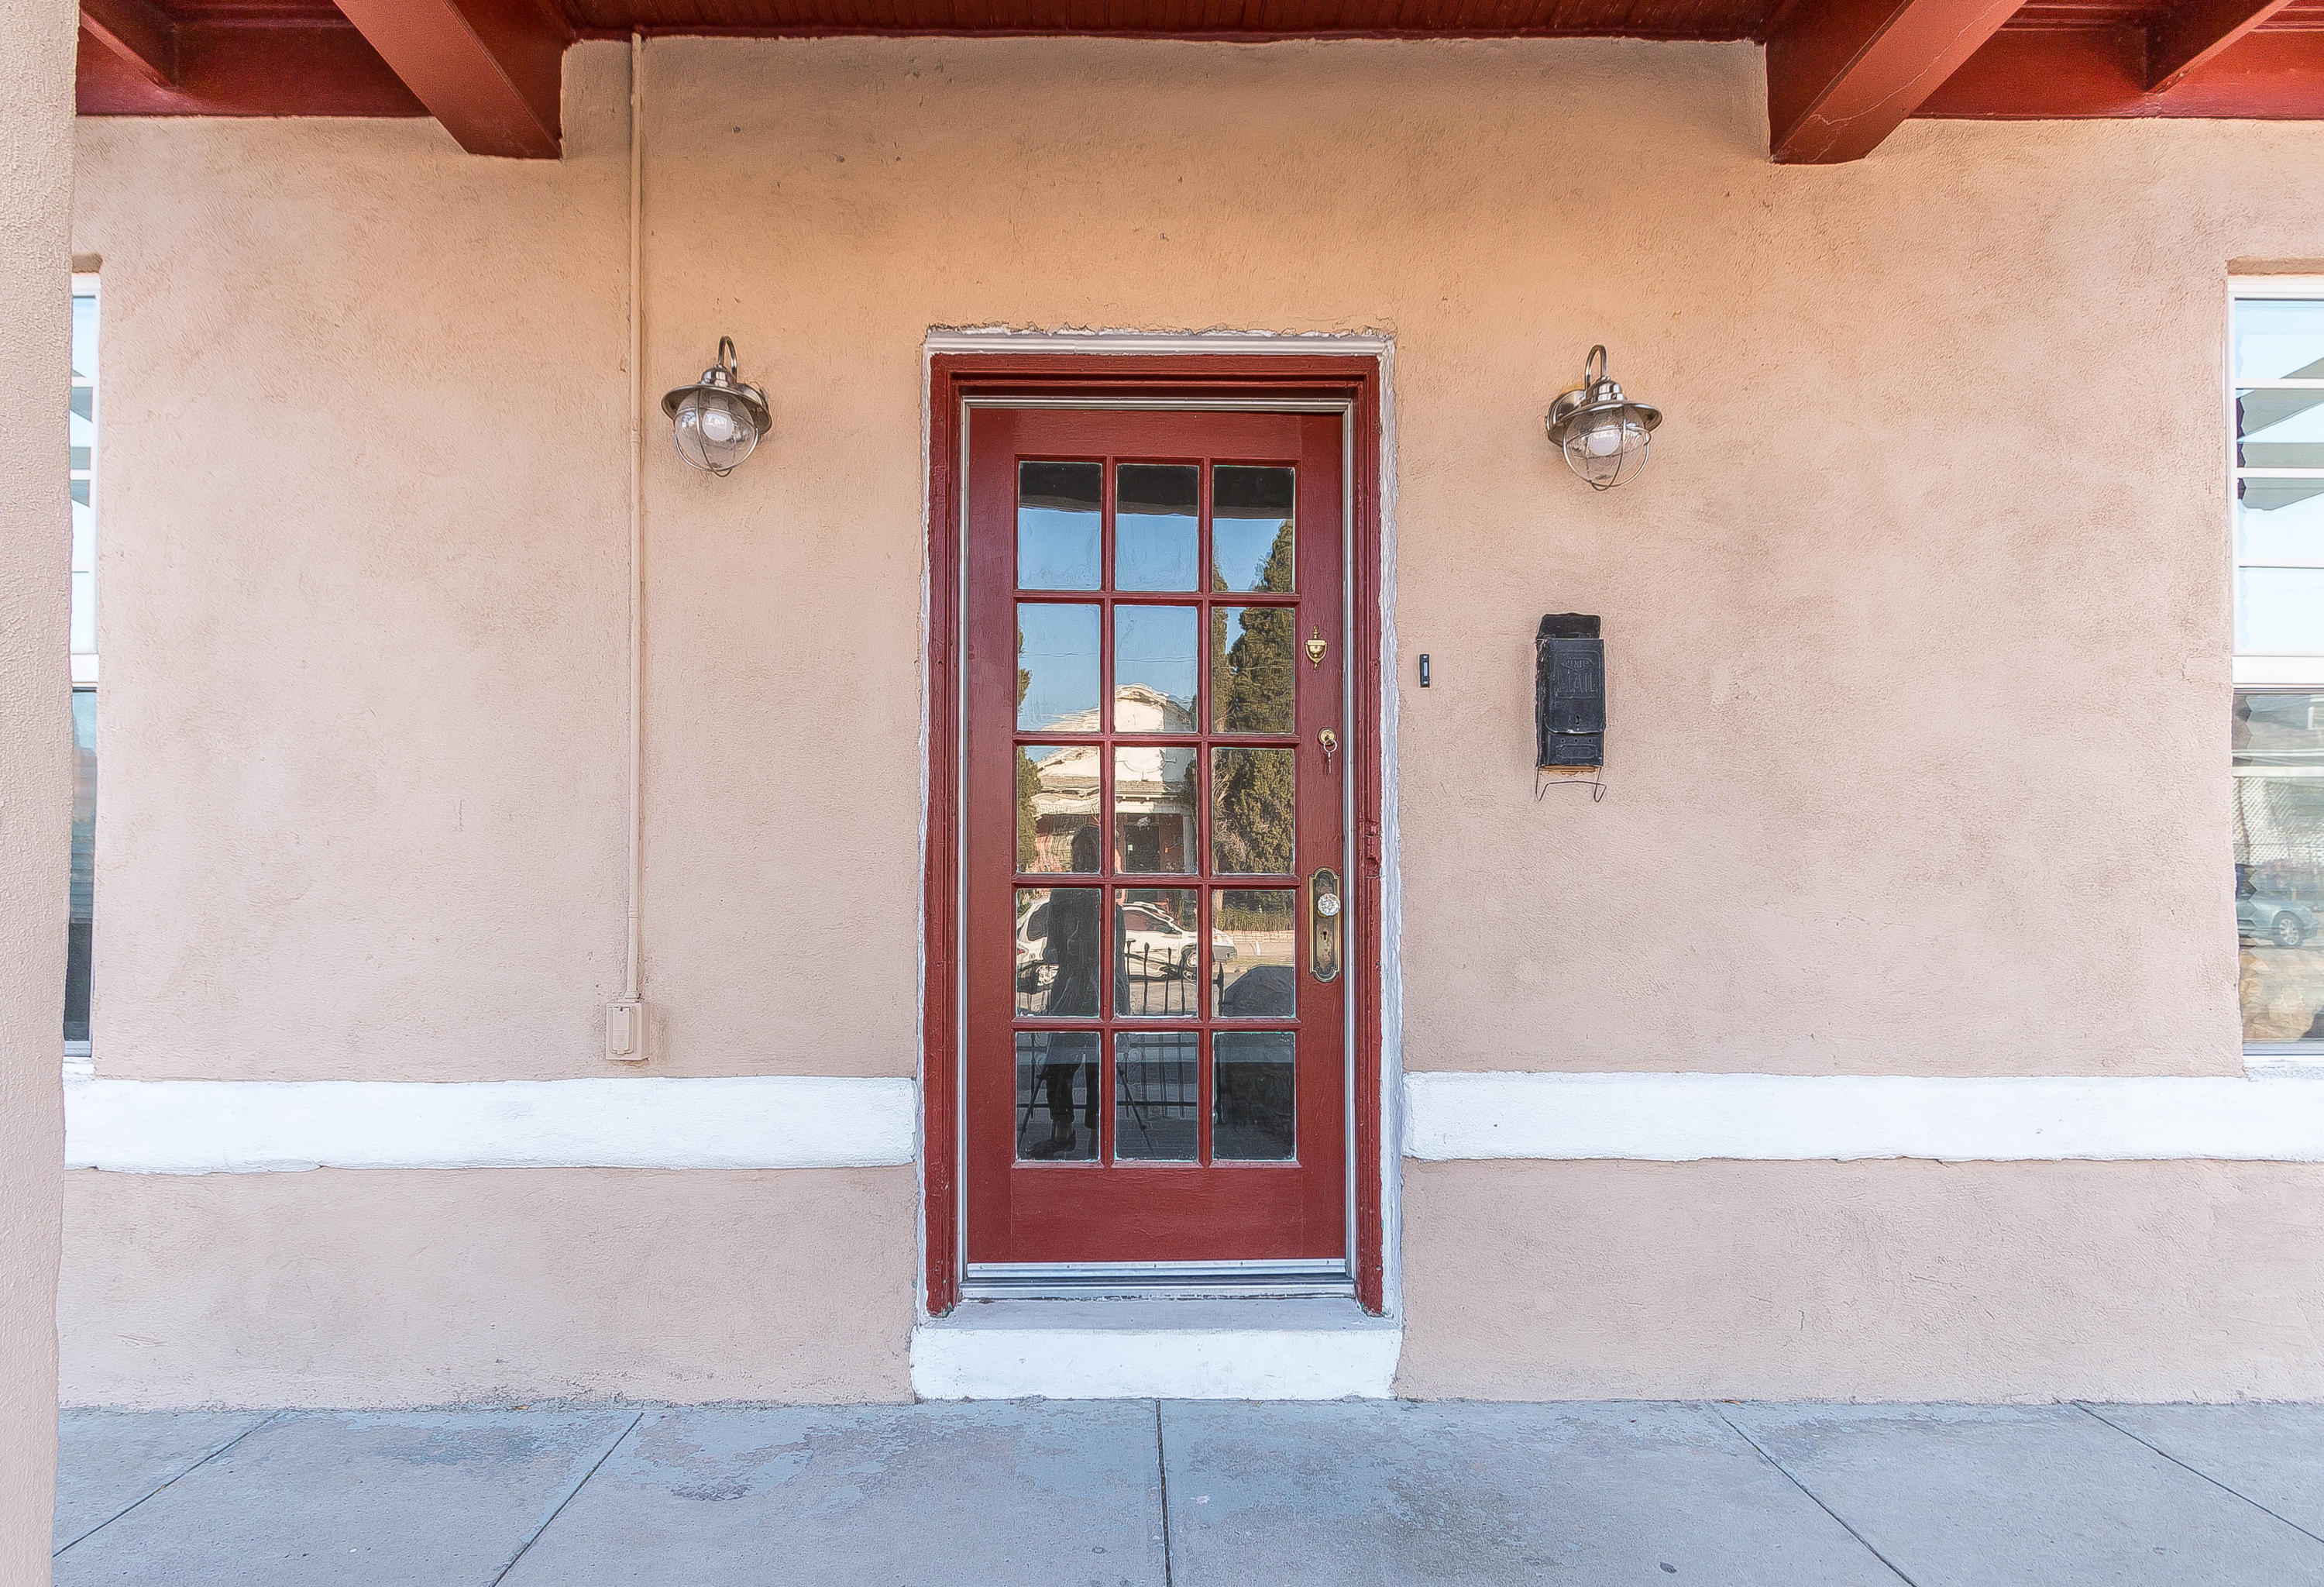 812 Mundy Drive, El Paso, Texas 79902, 3 Bedrooms Bedrooms, ,2 BathroomsBathrooms,Residential Rental,For Rent,Mundy,837305